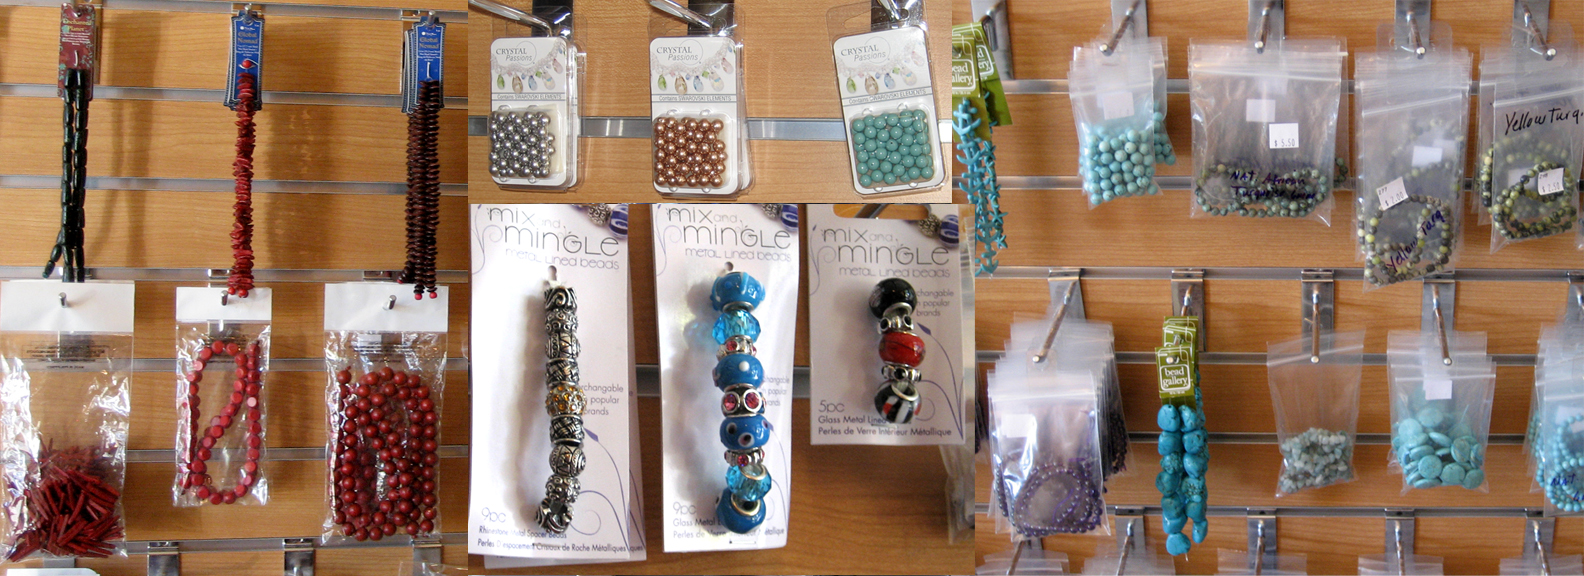 KMM-Humming-Beads-Bead-Store-Craft-Shop-Kingman-AZ-Business-3a